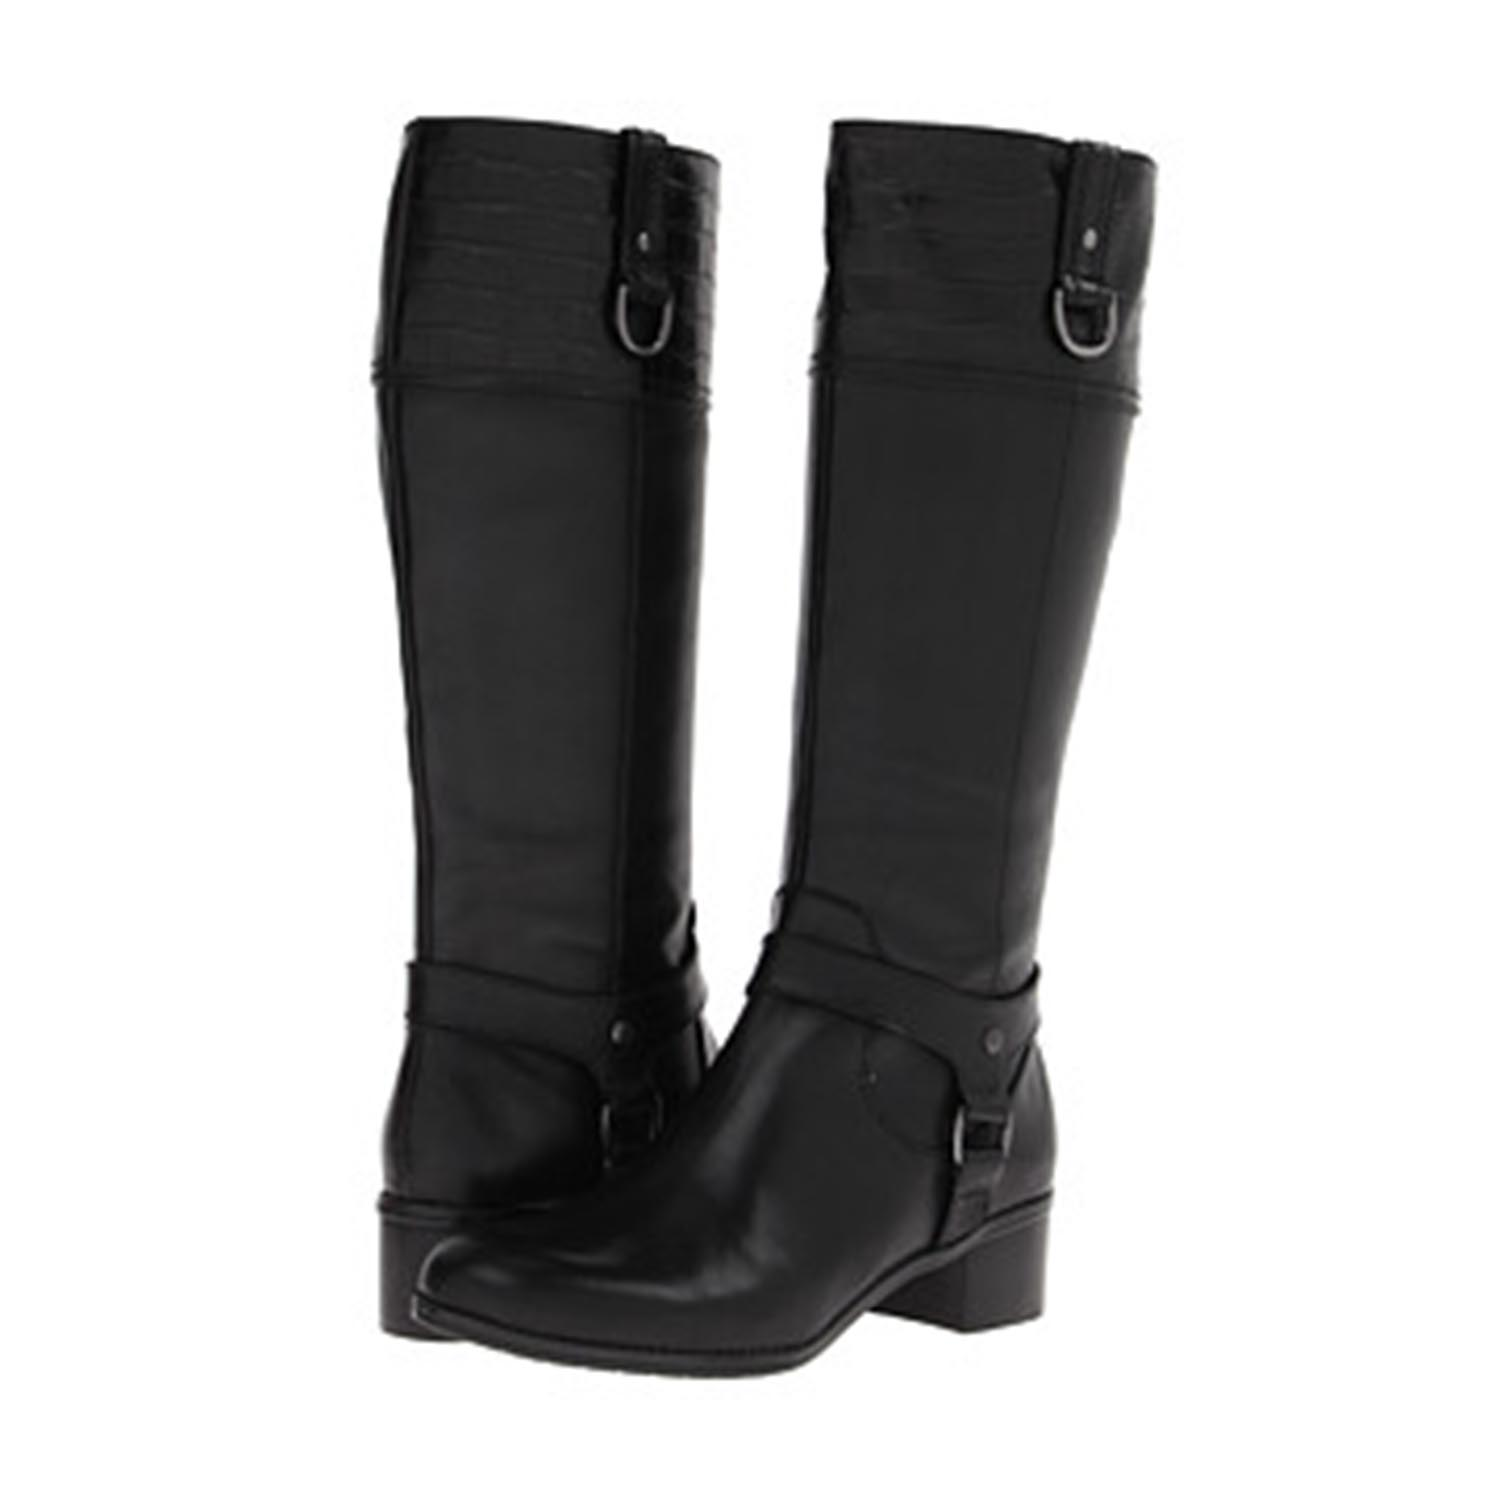 Womens Black Riding Boots rKF3mWmB